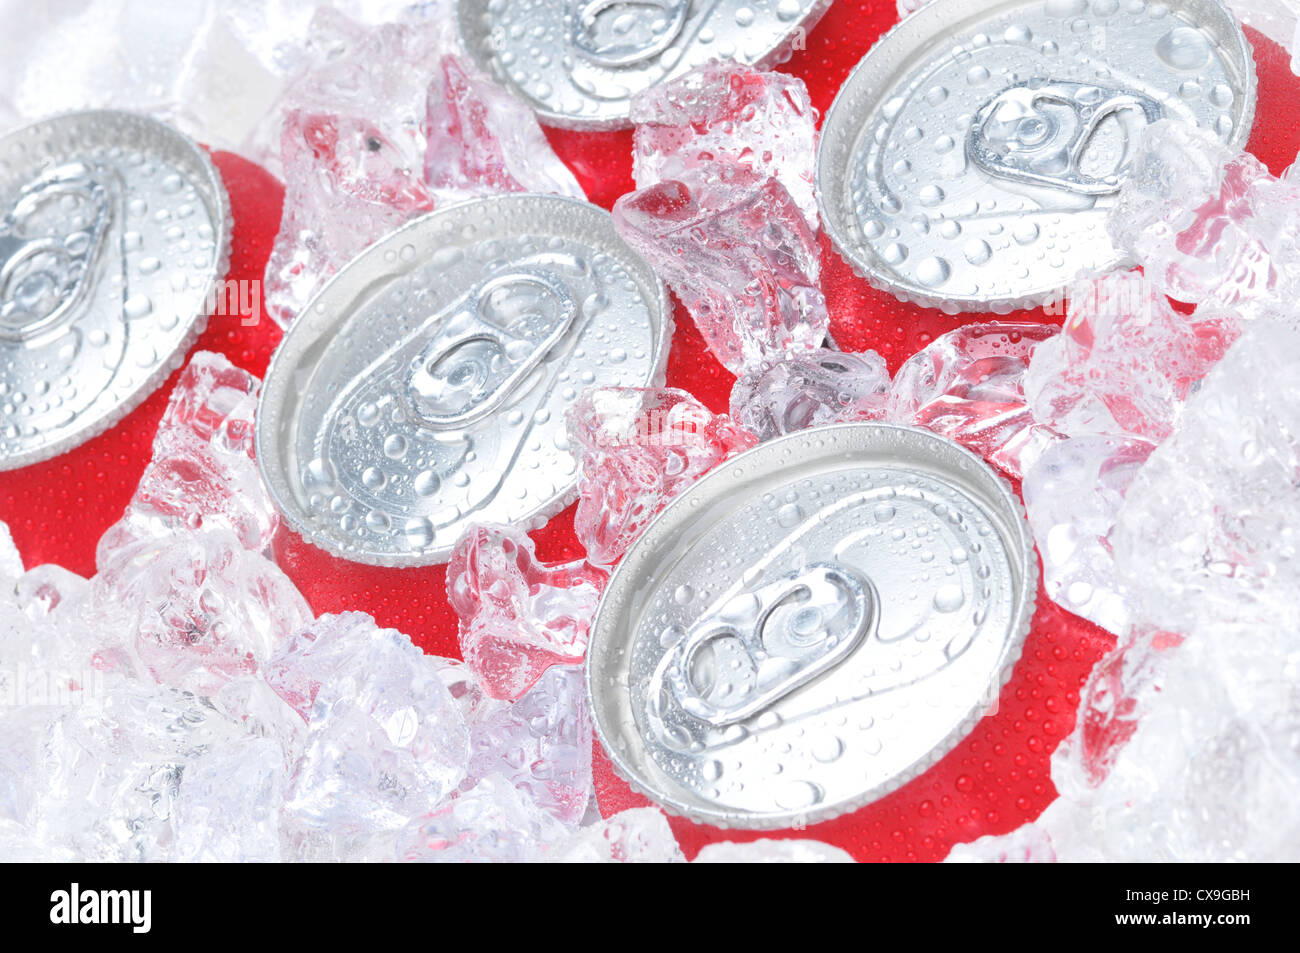 Close Up of Soda Cans in Ice with Condensation - Stock Image